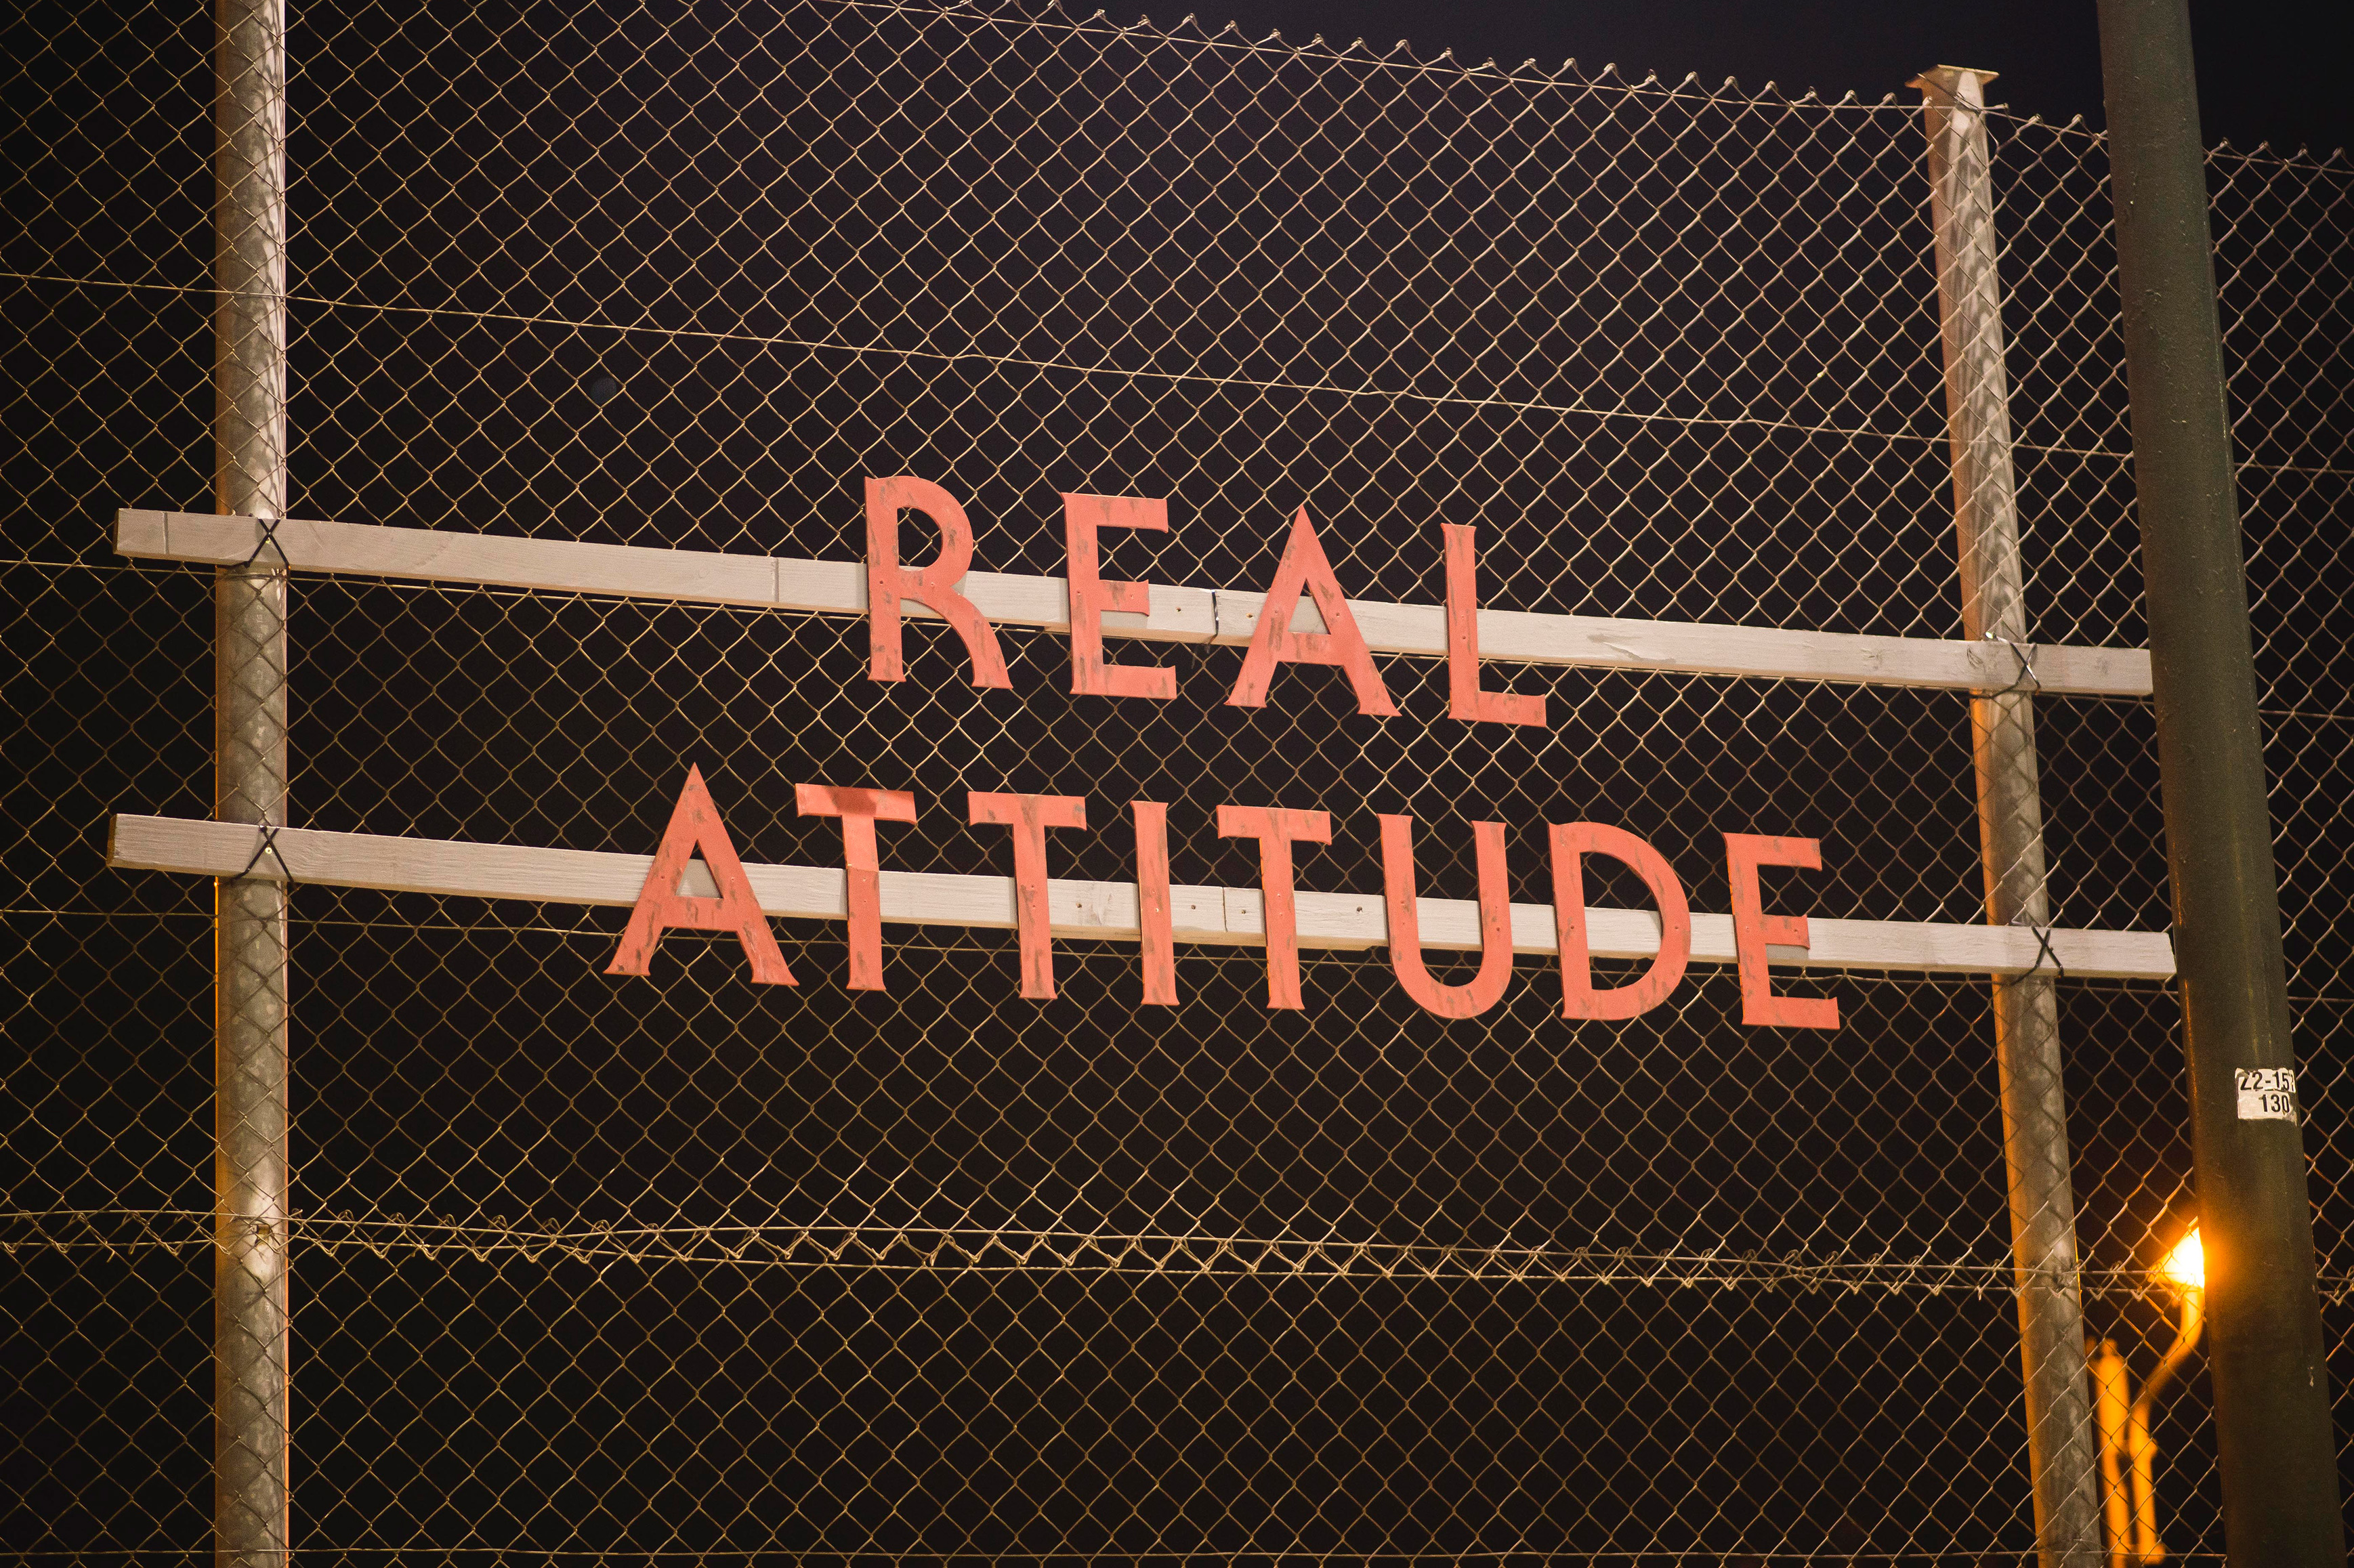 Cere-Full real attitude